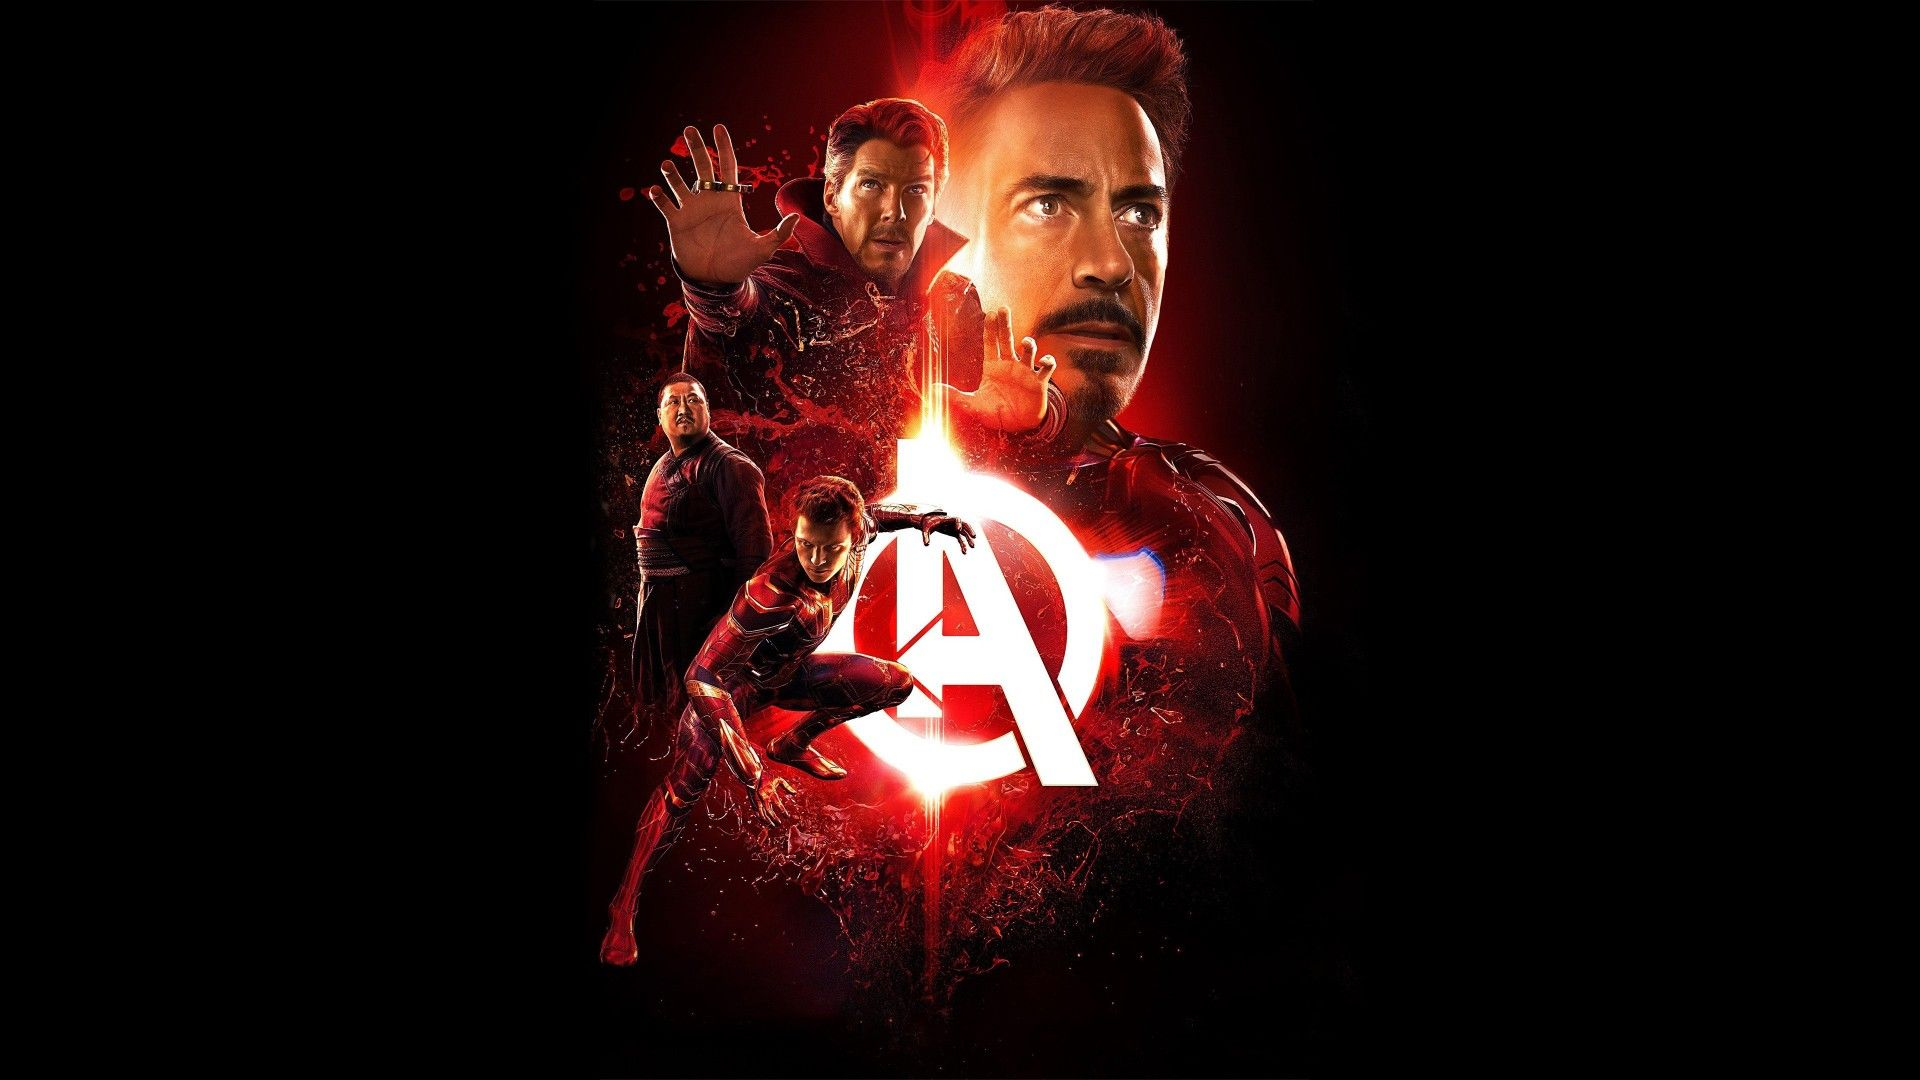 Avengers Endgame Hd Wallpapers For Smartphones Laptops And